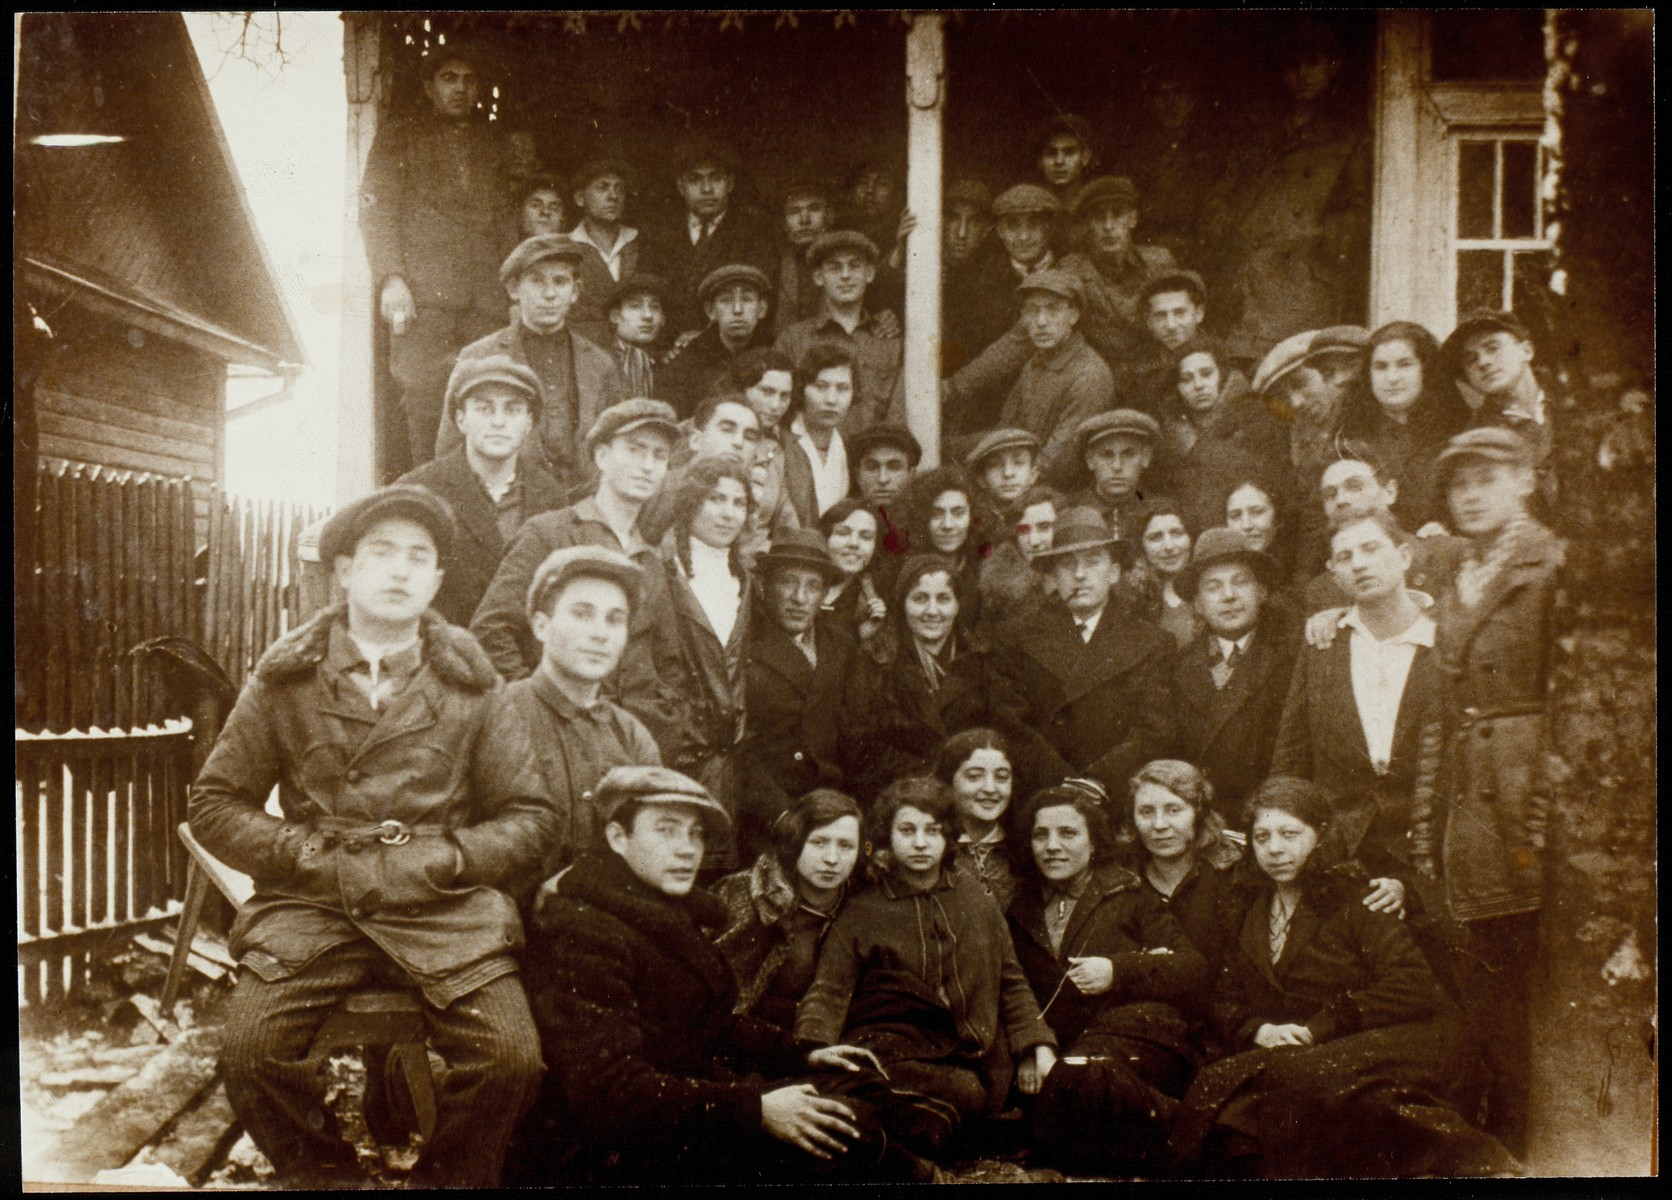 Members of Hehalutz Hamizrachi from greater Vilna.  The majority of the members immigrated to Palestine before the war.